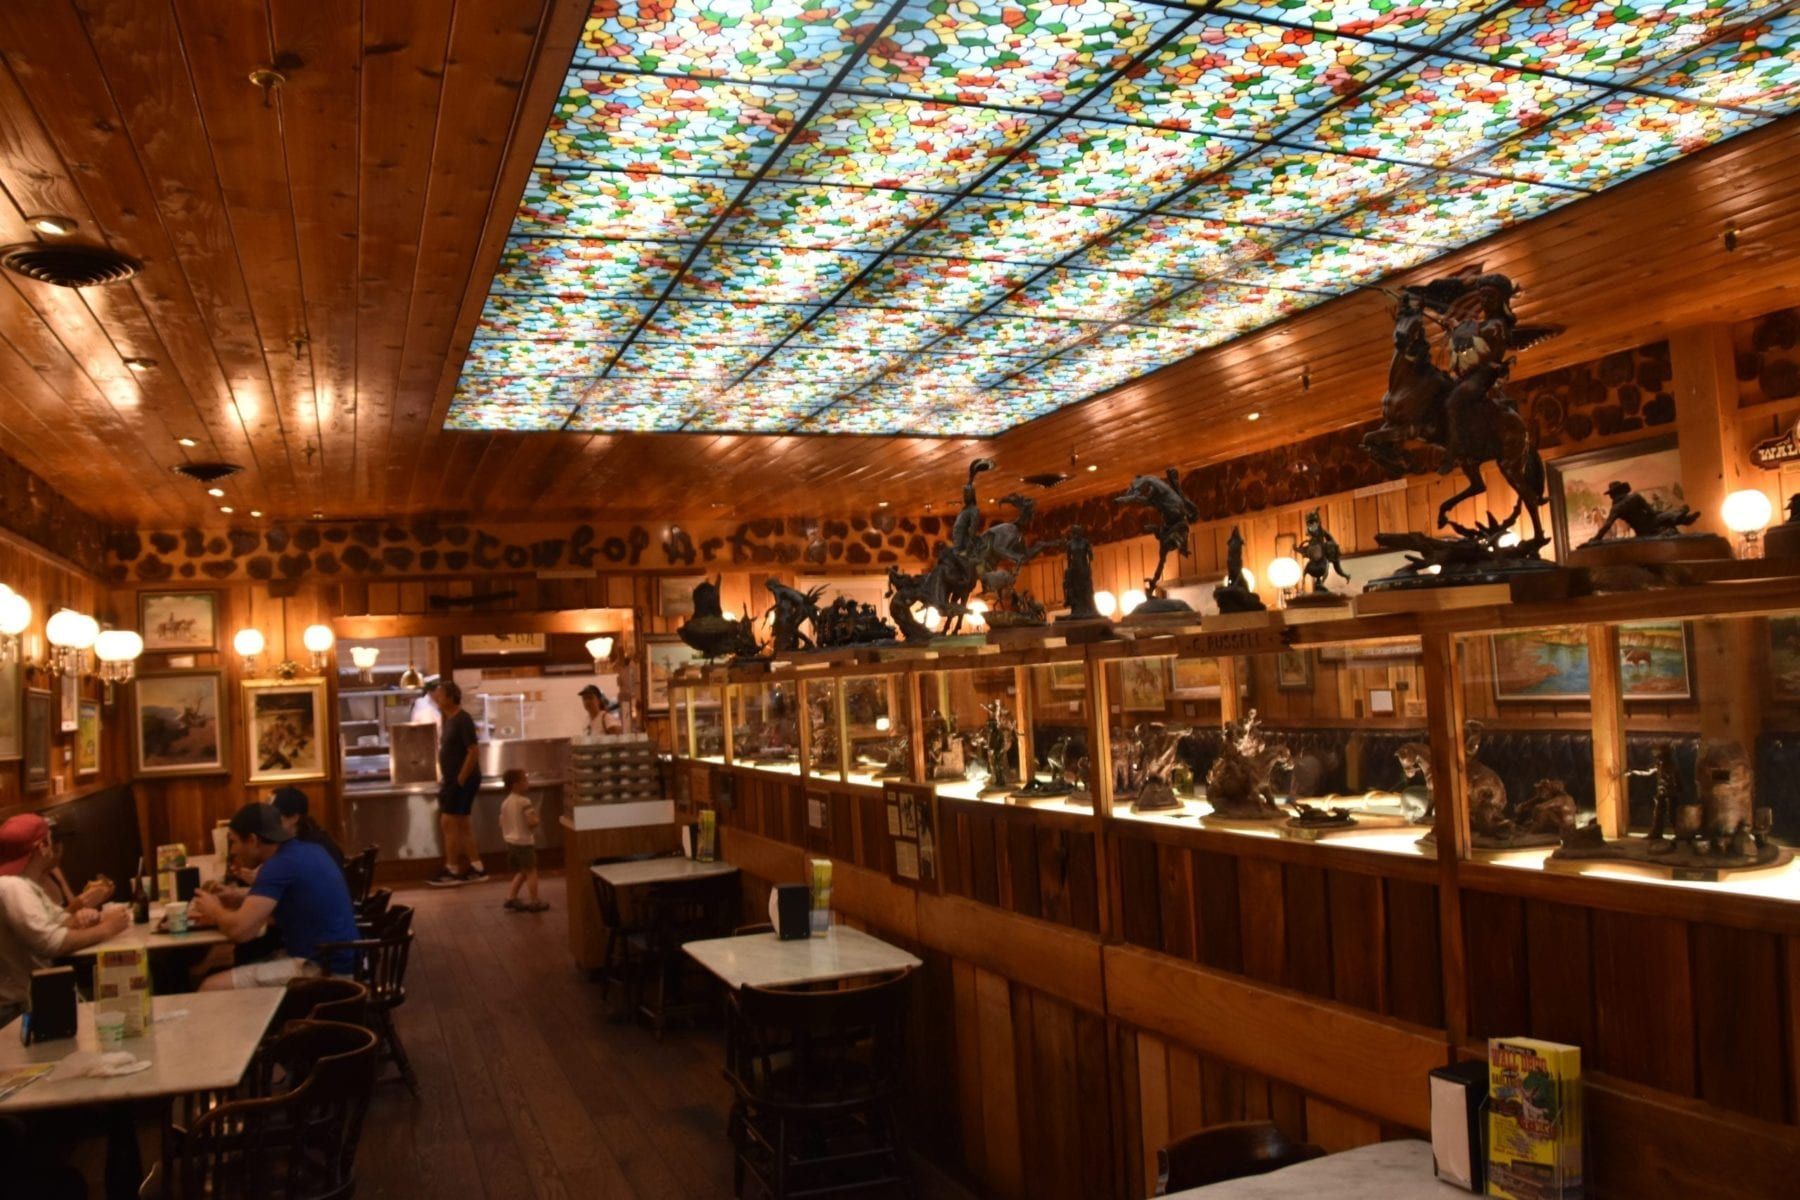 Restaurant at Wall Drug Store